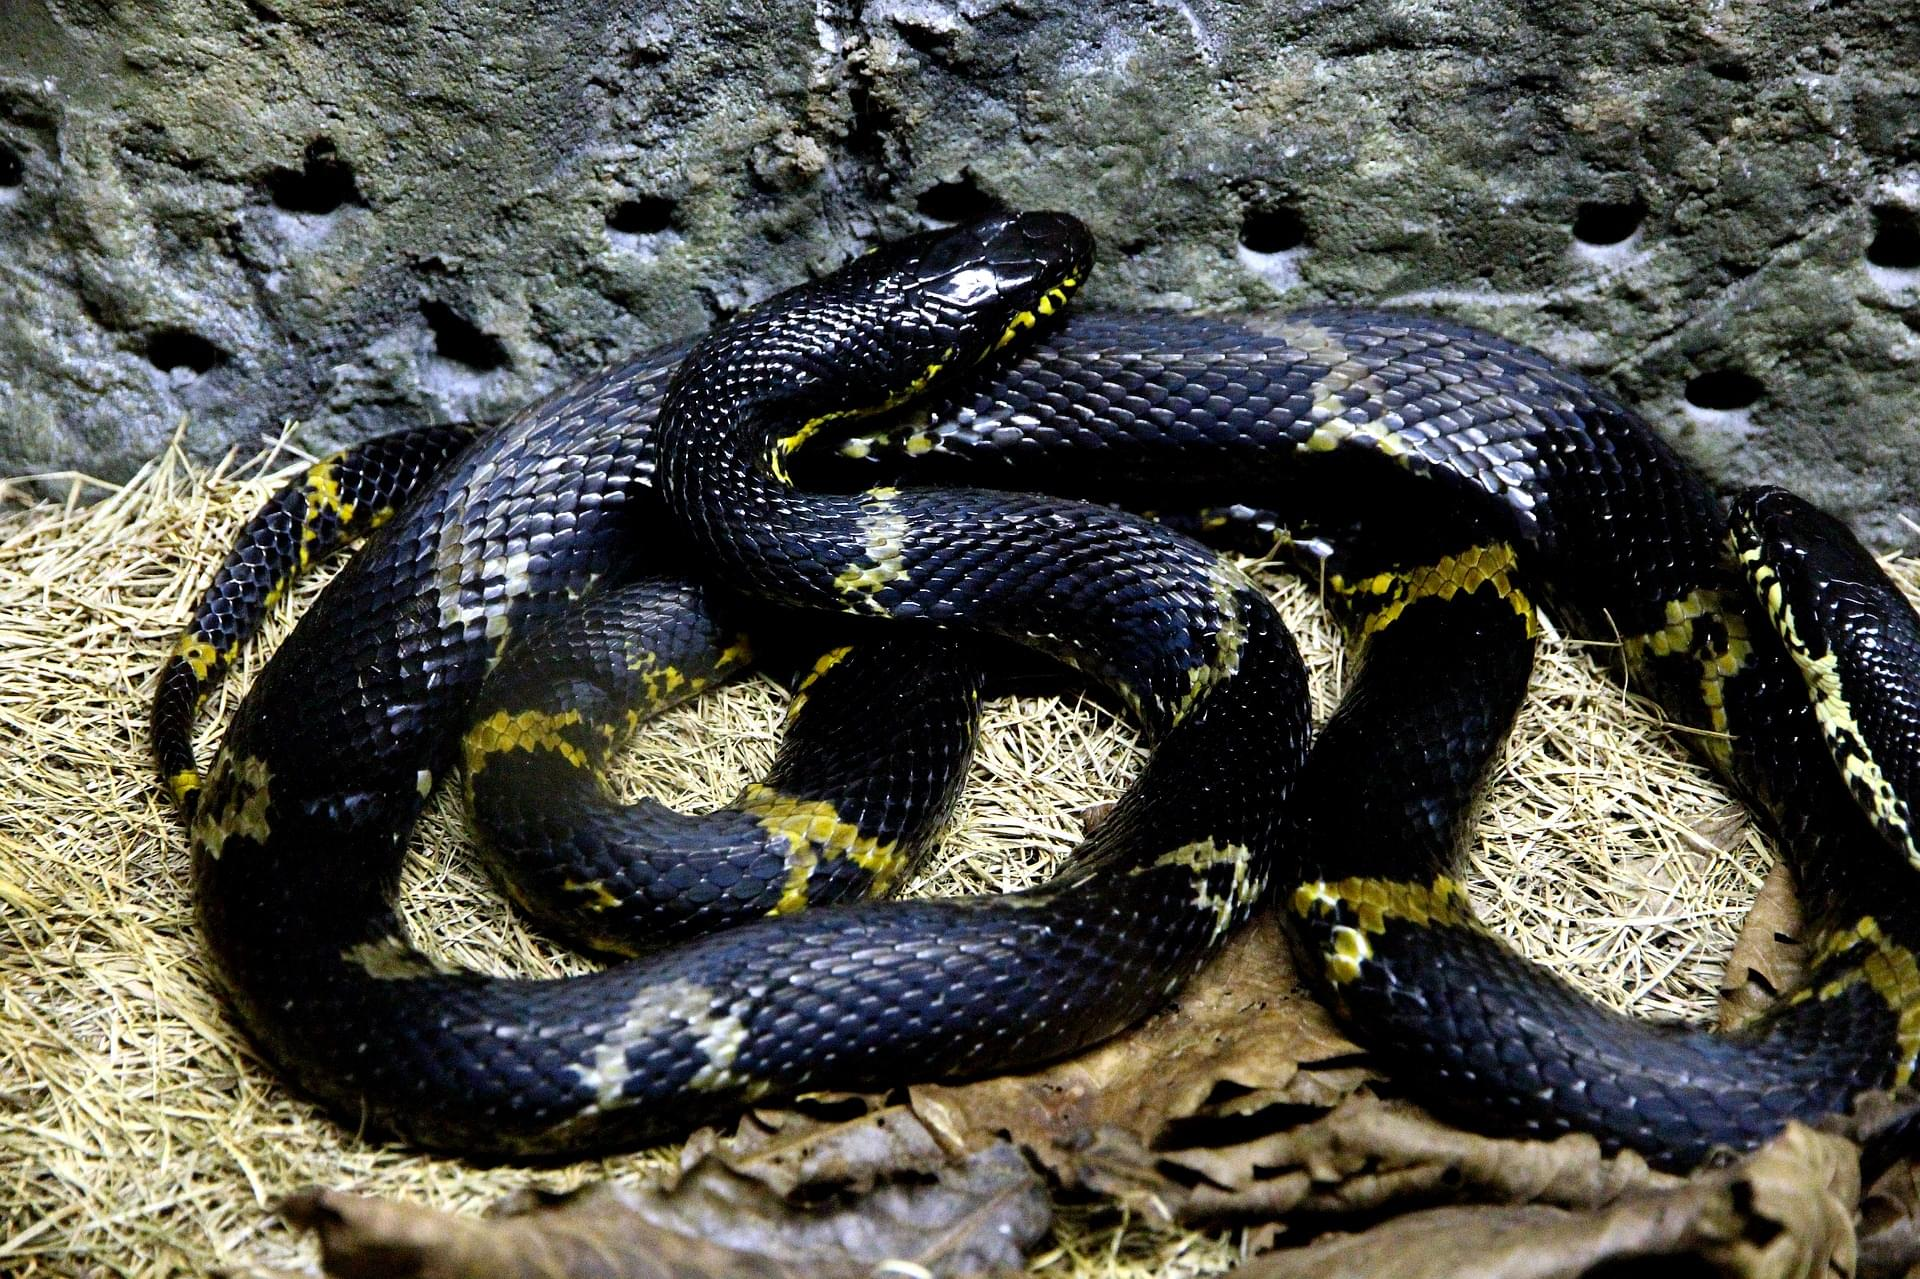 Massive Rat Snake Spotted On Zionsville Trail [PHOTO]